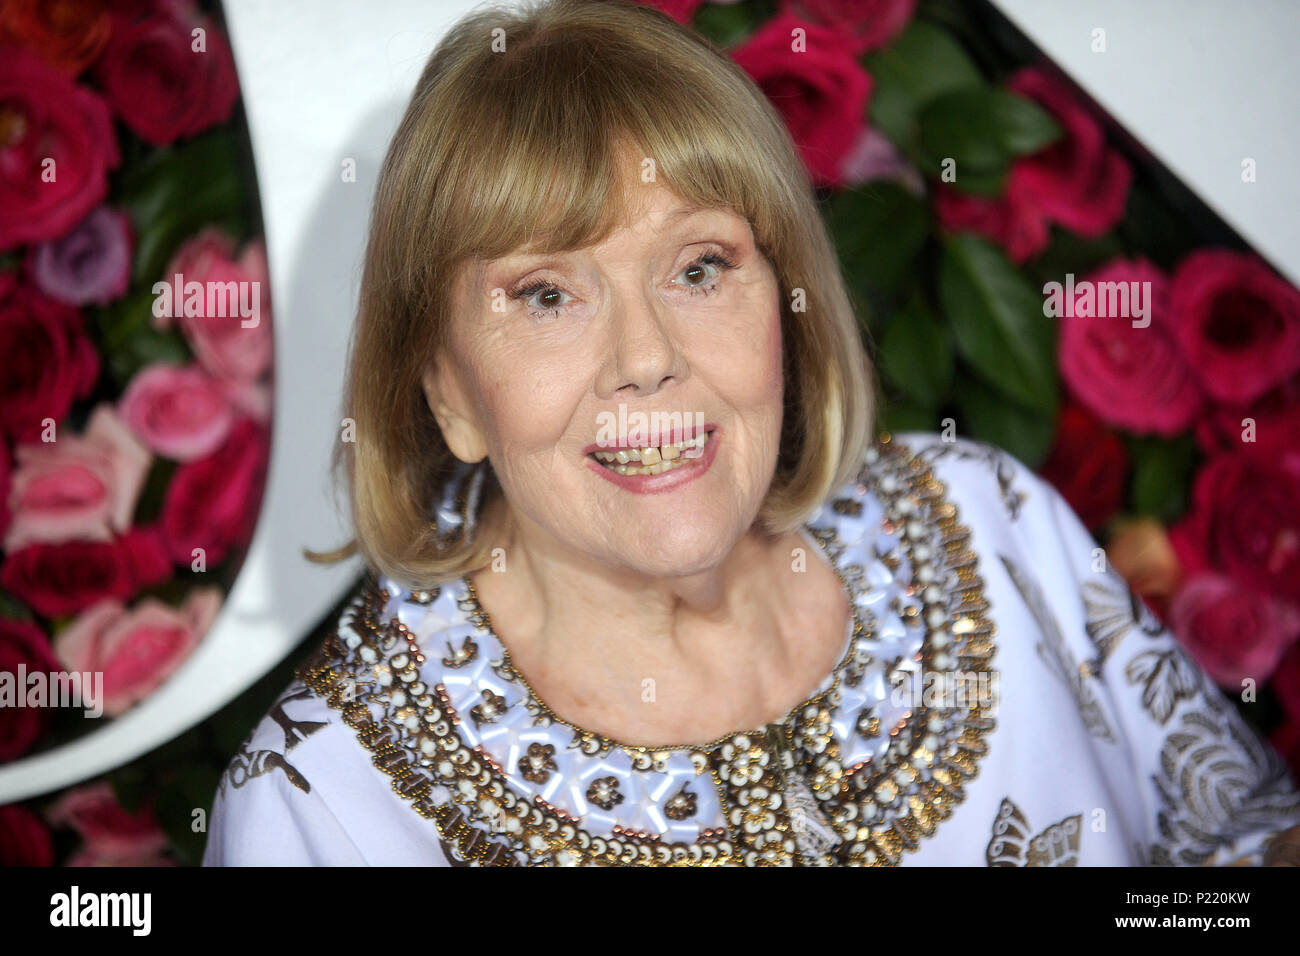 Diana Rigg attending the 72nd Annual Tony Awards 2018 at the Radio City Music Hall on June 10, 2018 in New York City. - Stock Image